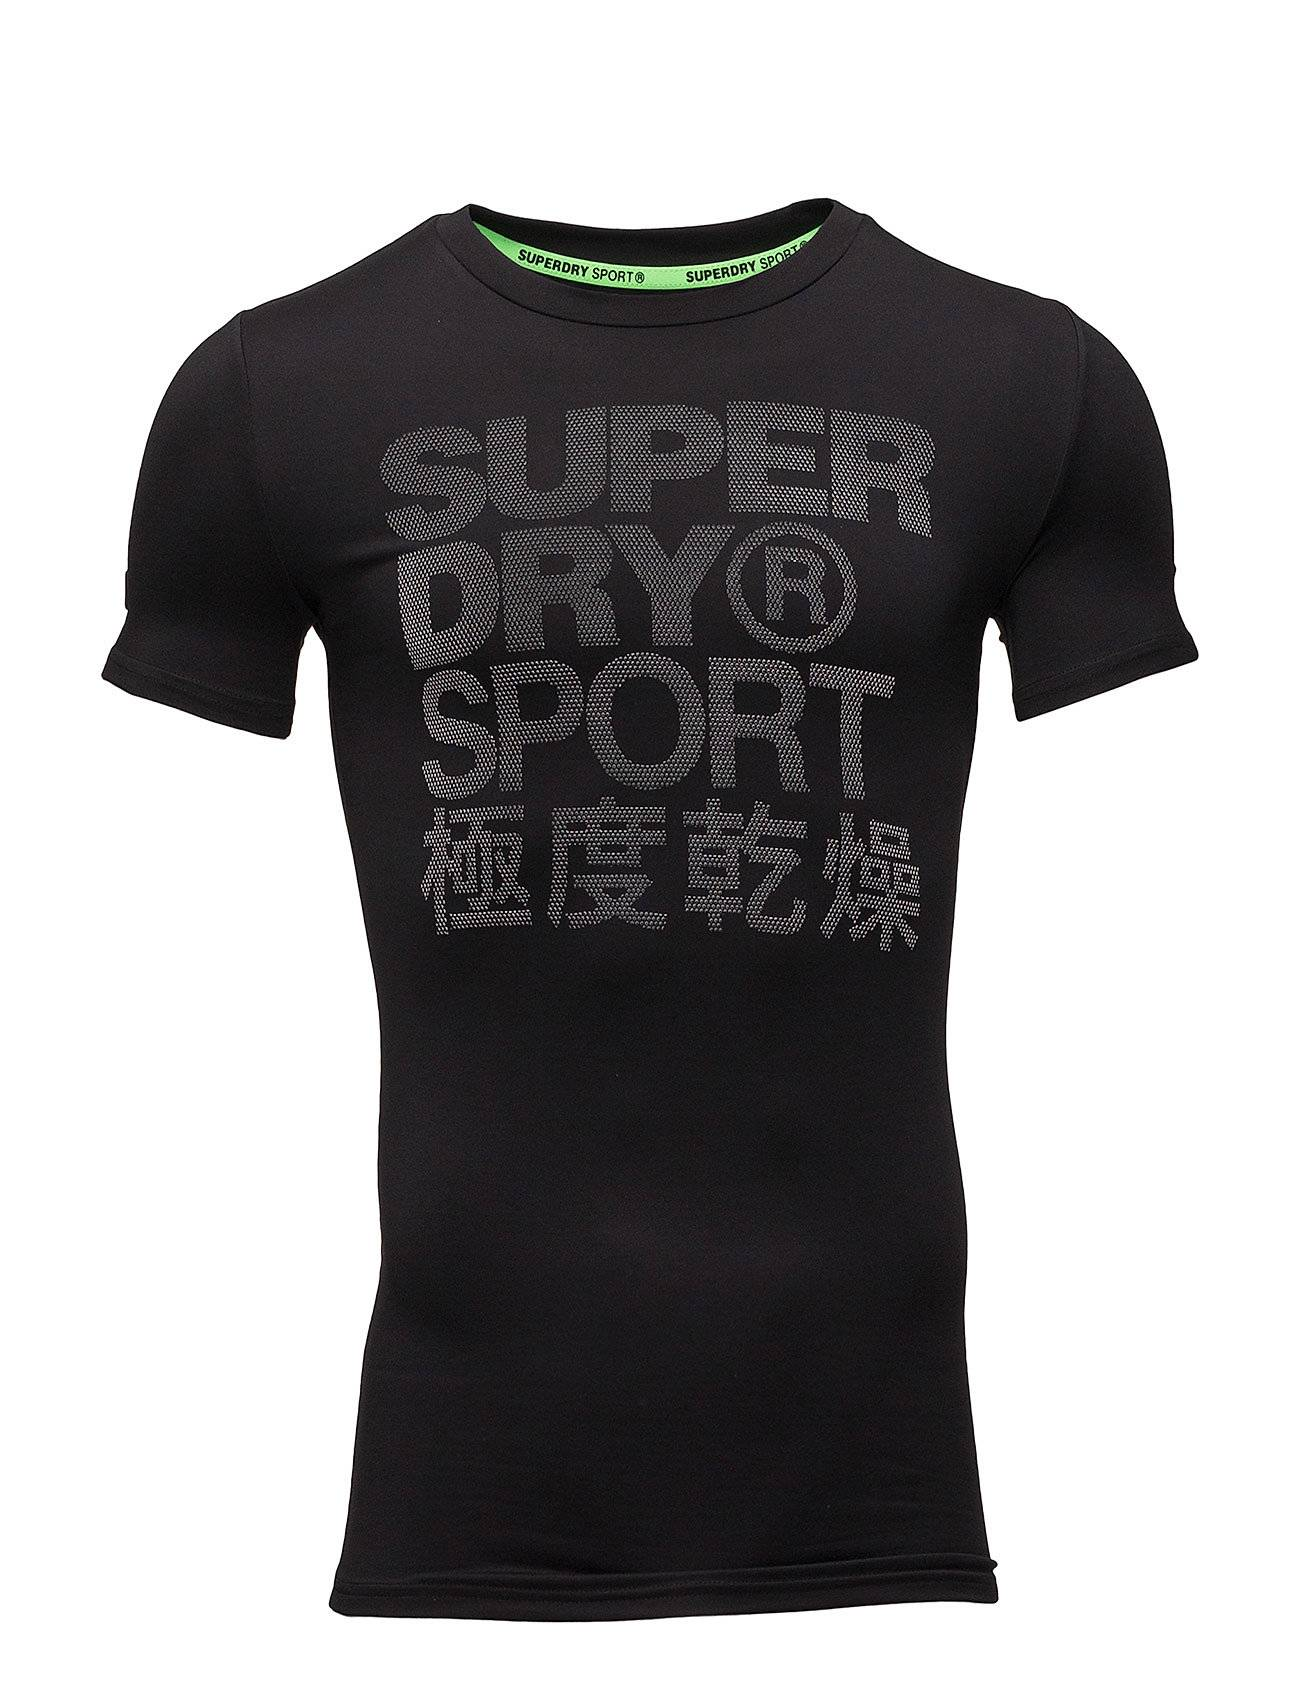 Superdry Sport Sports Athletic Graphic Tee